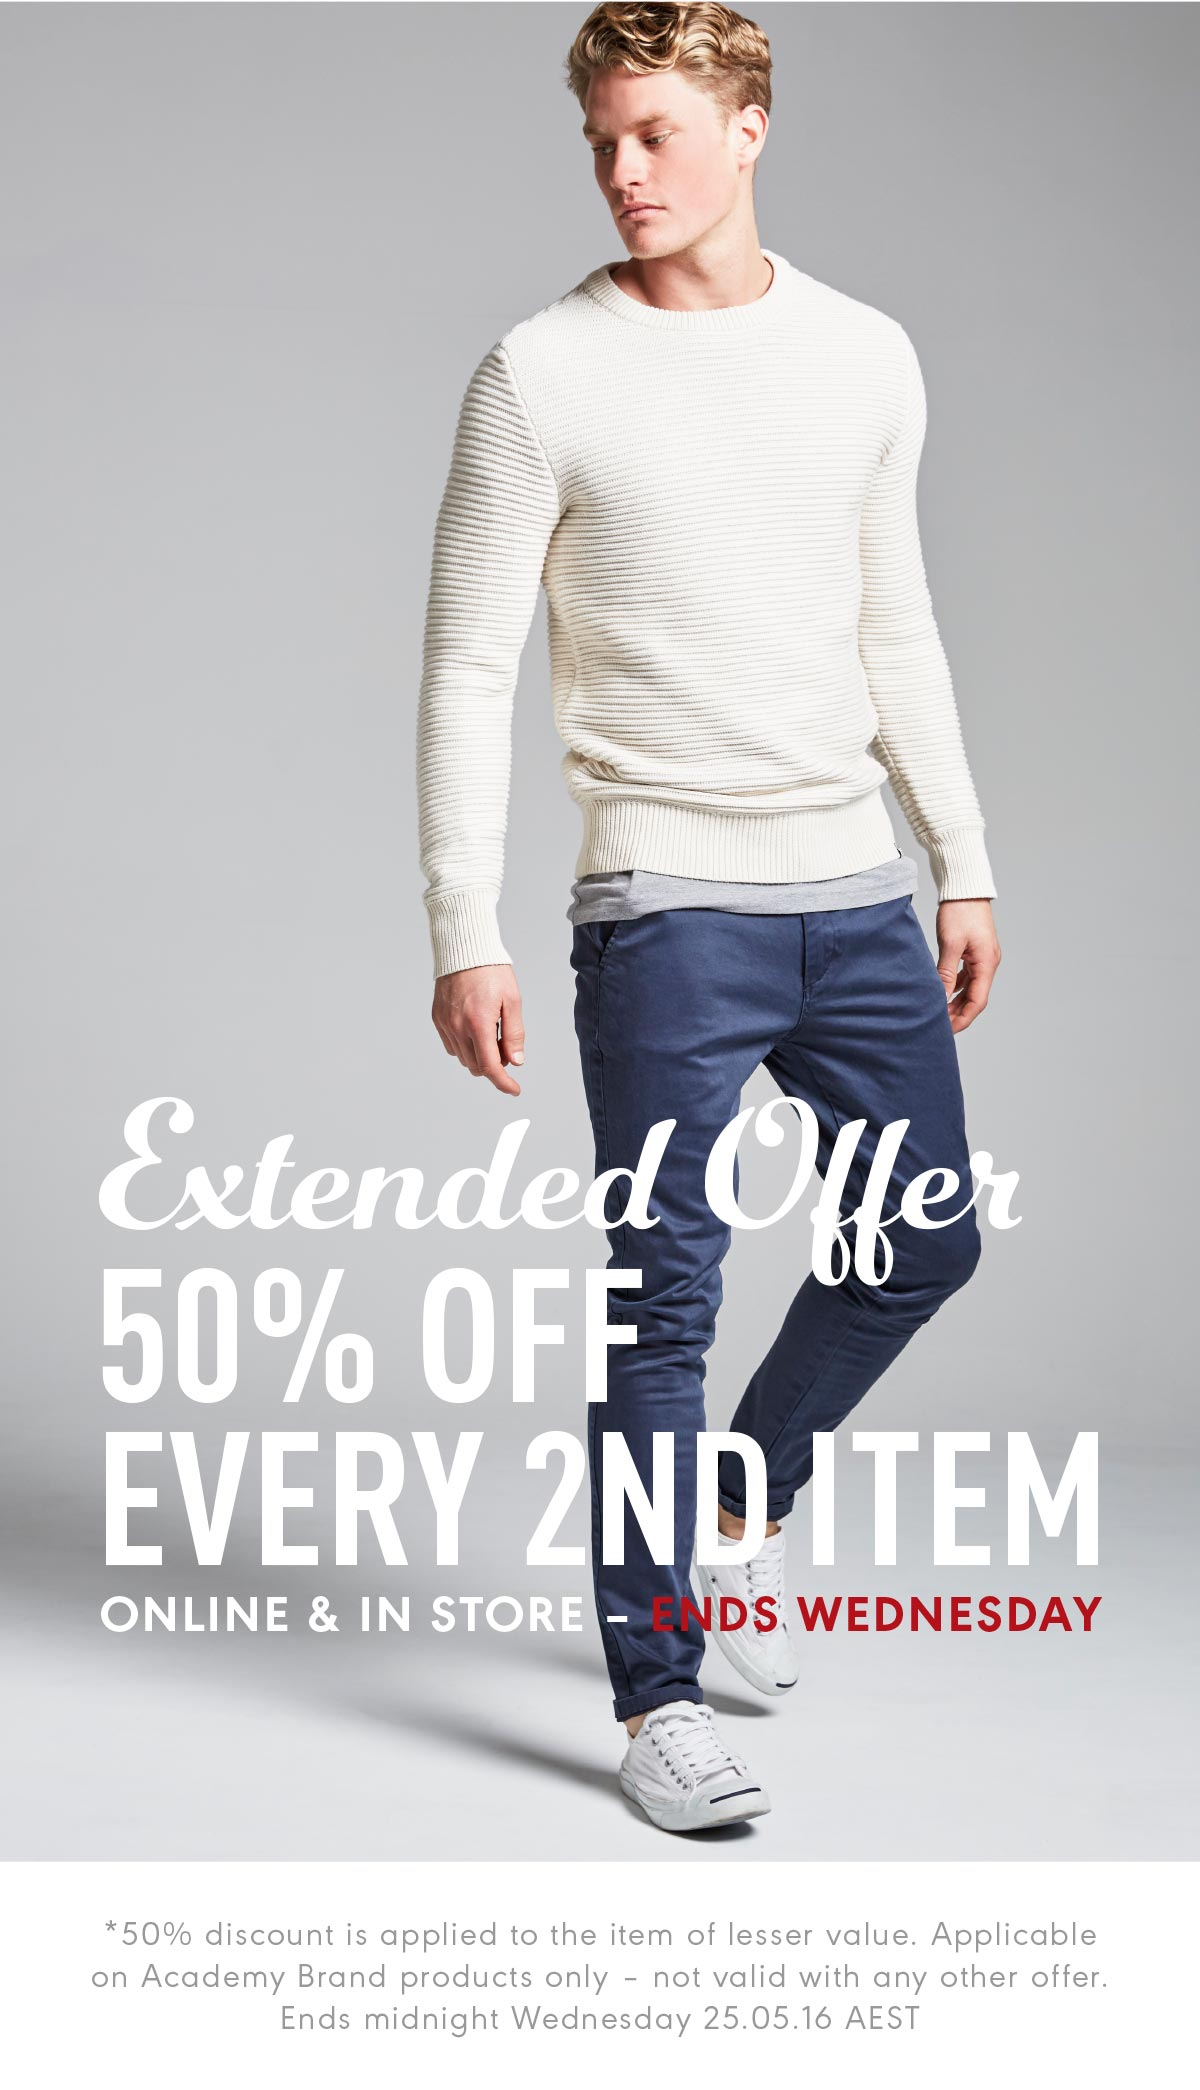 Save 50% off every 2nd item + free shipping on orders over $99 Australia wide at The Academy Brand.